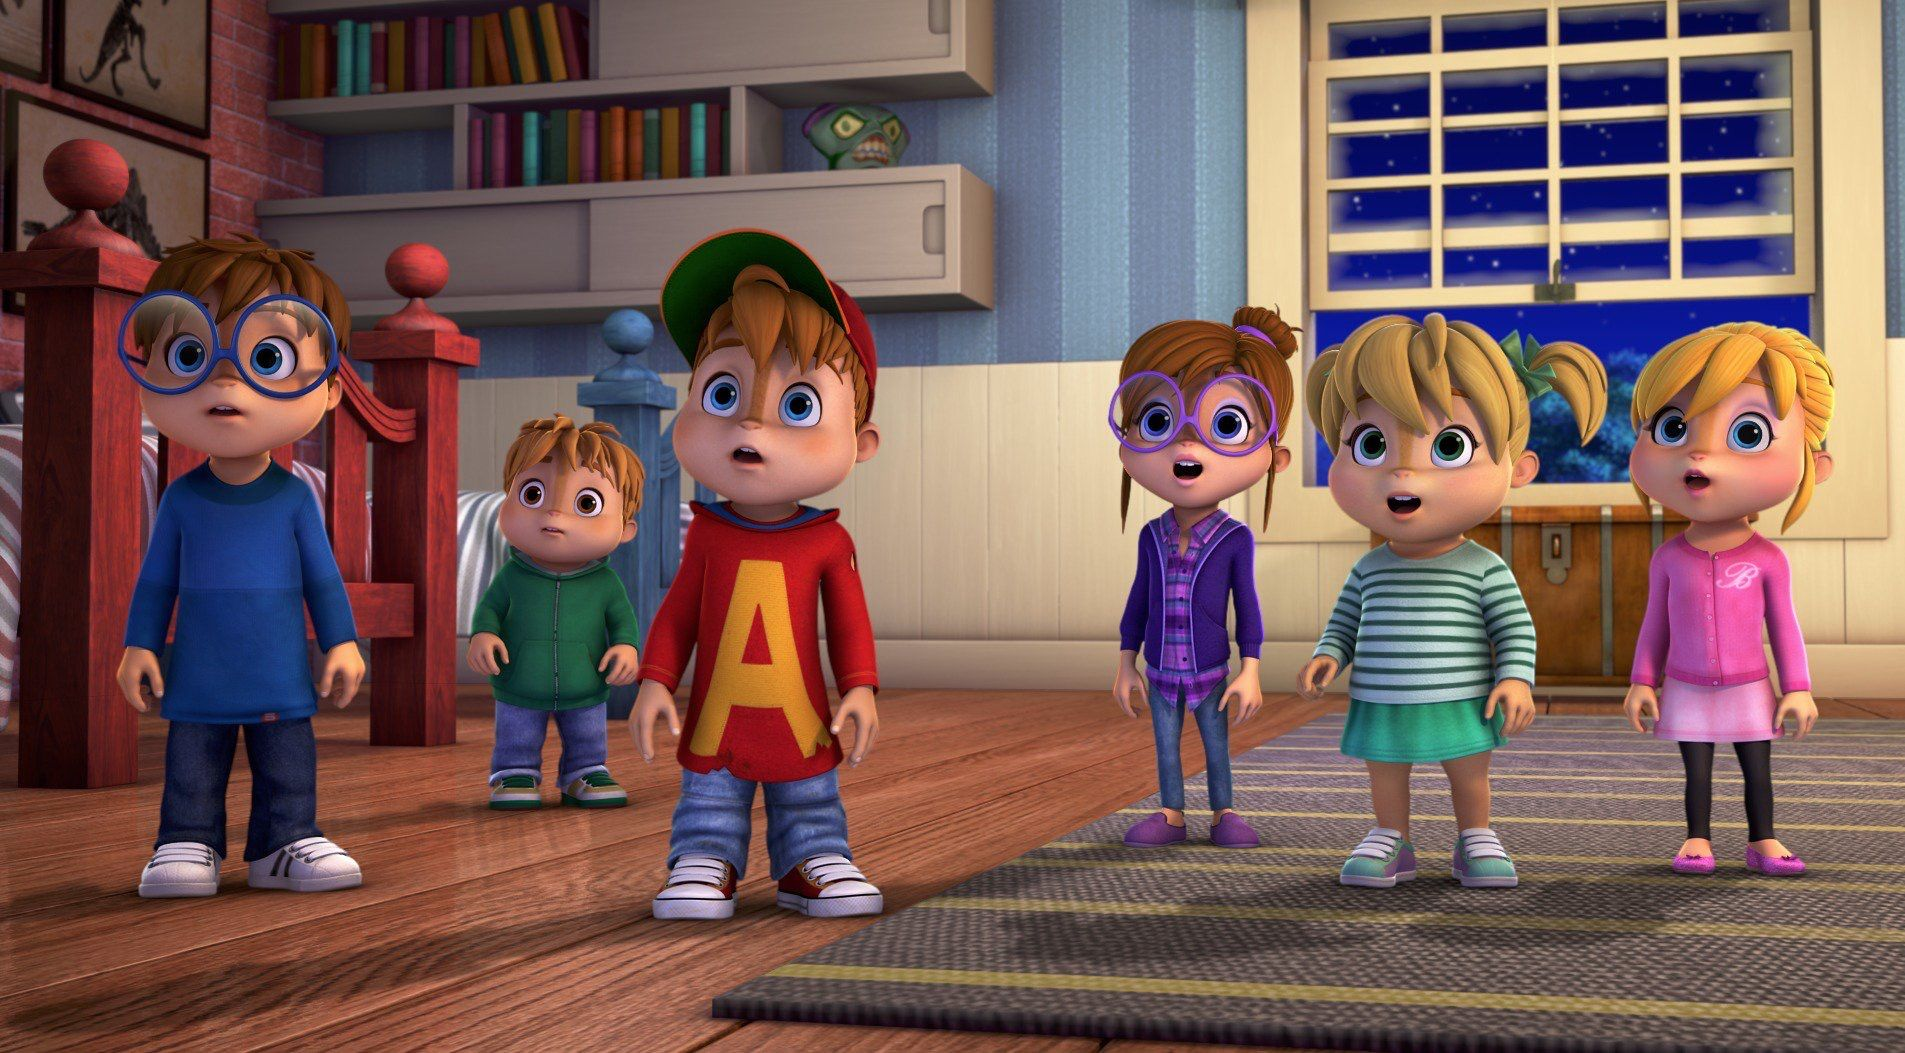 Alvinnn And The Chipmunks Brittany And Alvin alvinnn and the chipmunks | alvin, the chipmunks, chipmunks